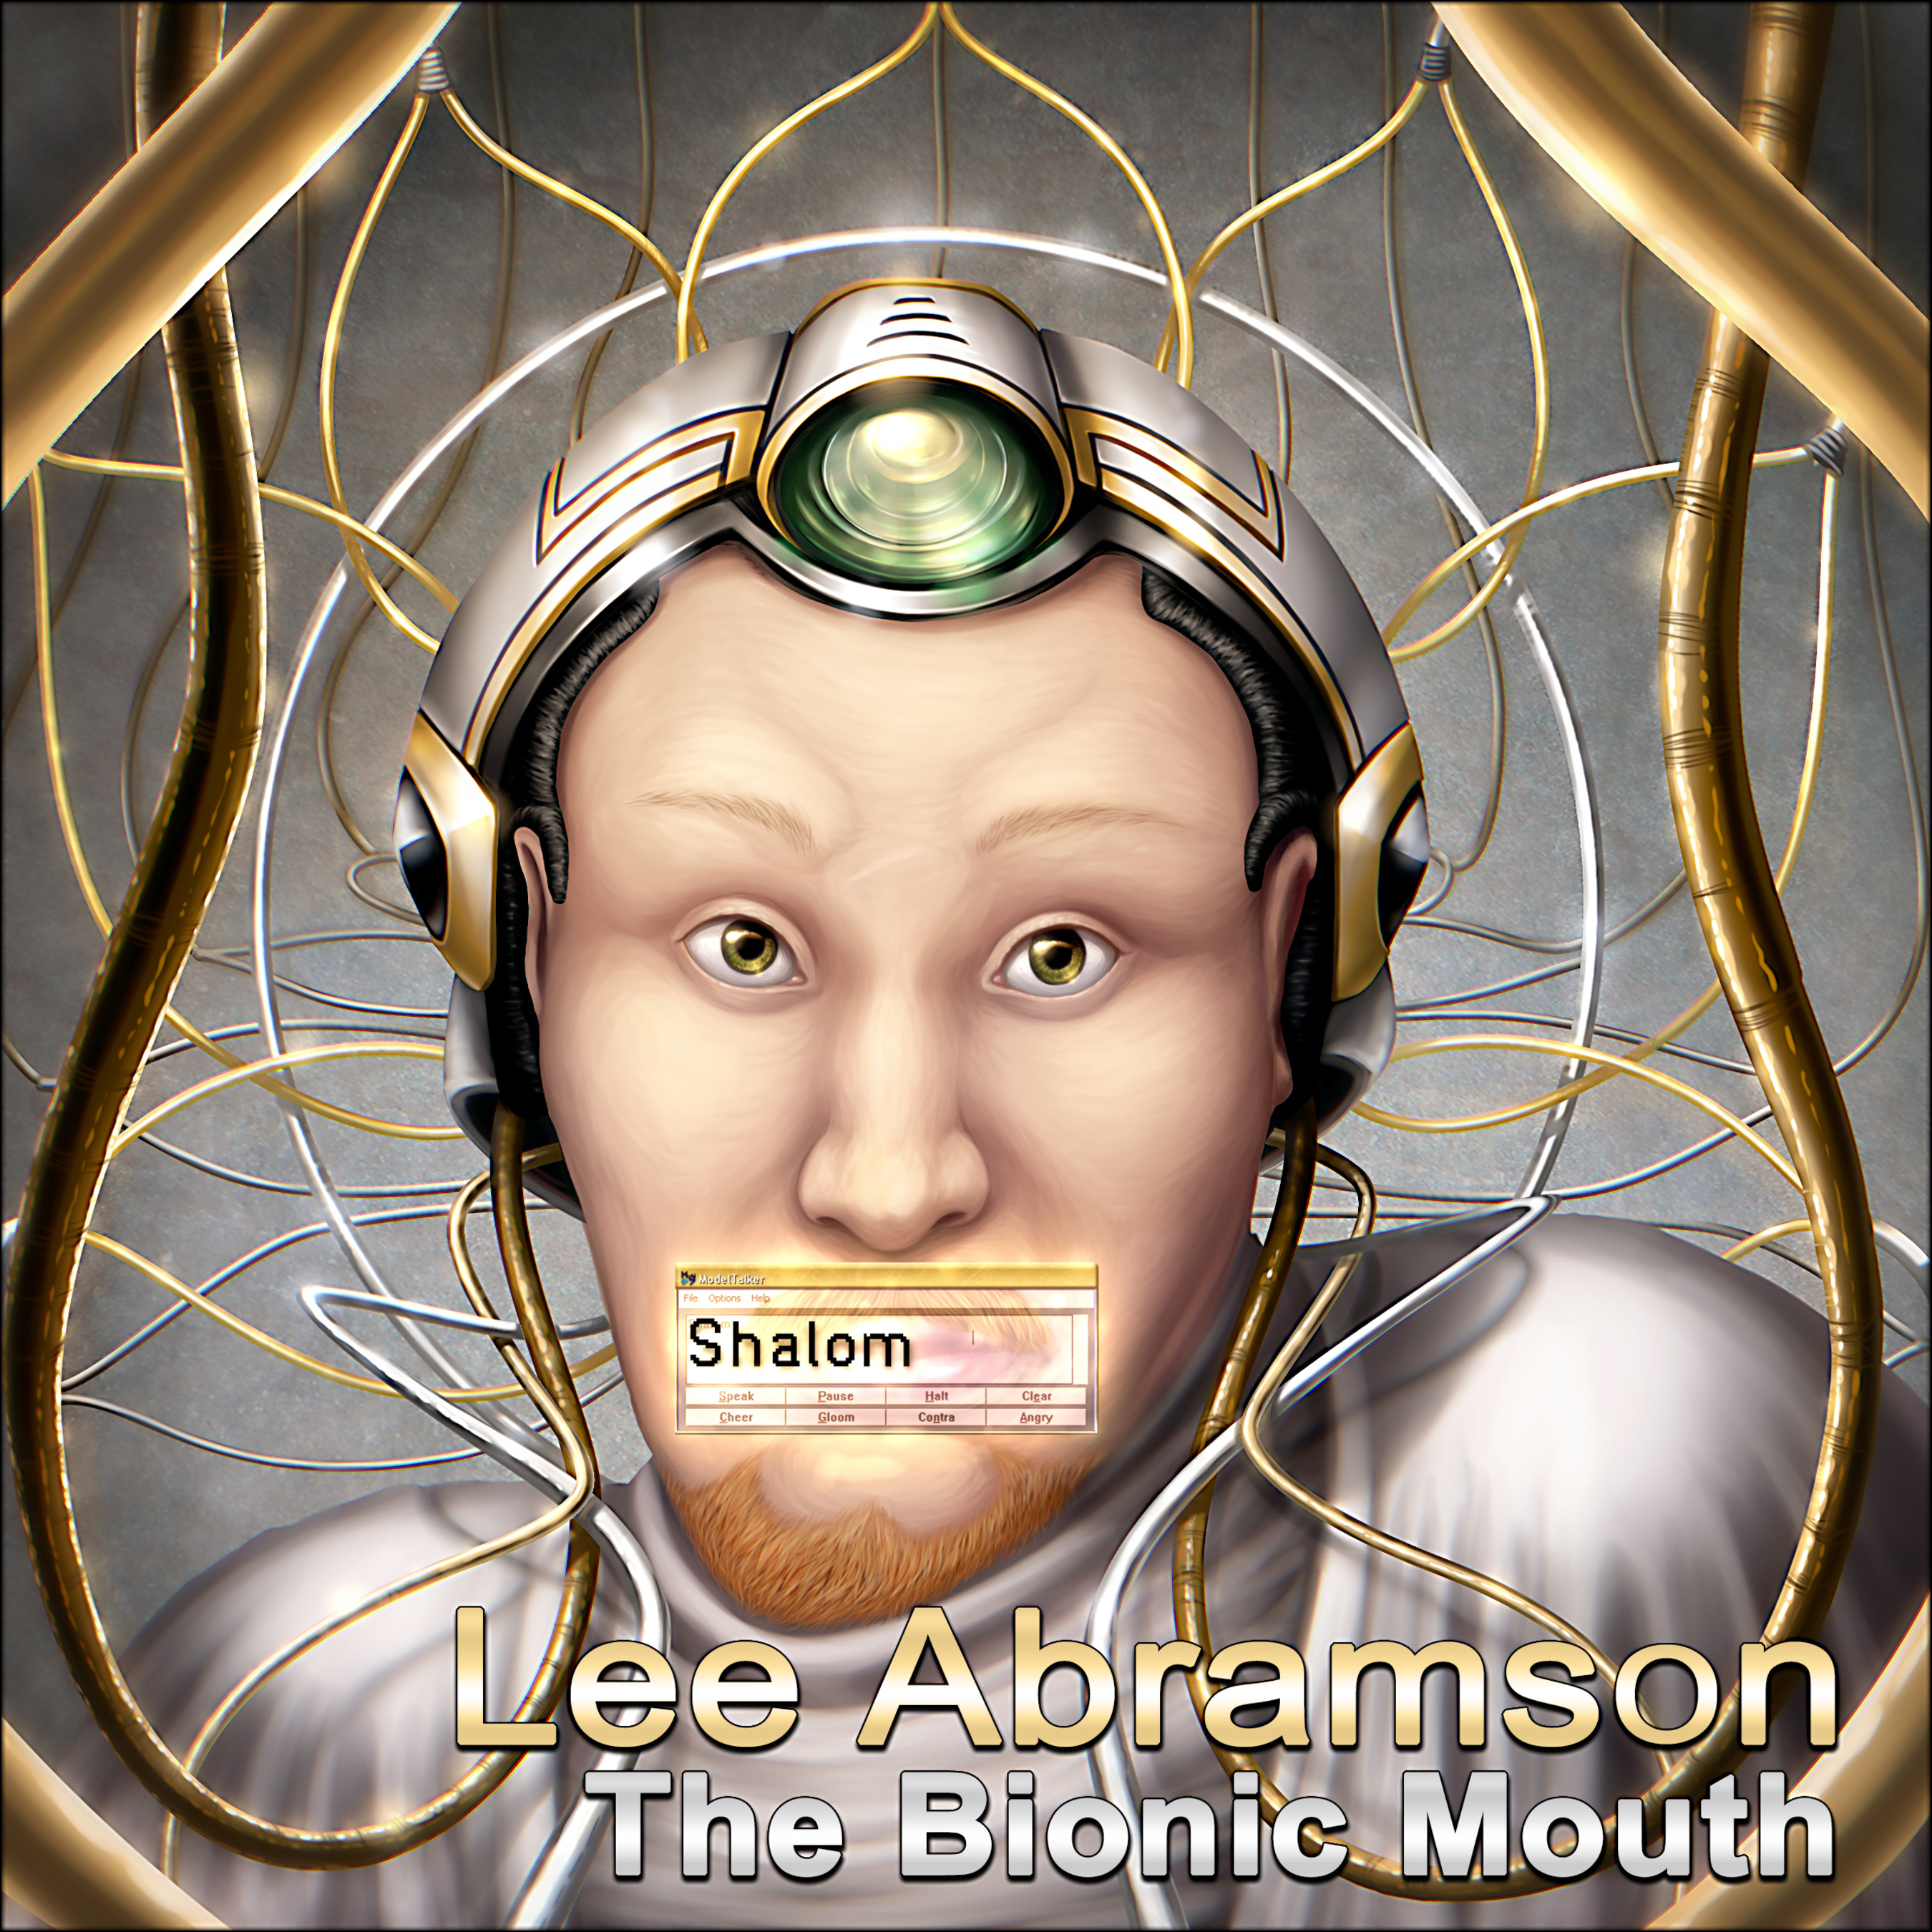 Lee Abramson - The Bionic Mouth.  (PRNewsFoto/Lee Abramson)